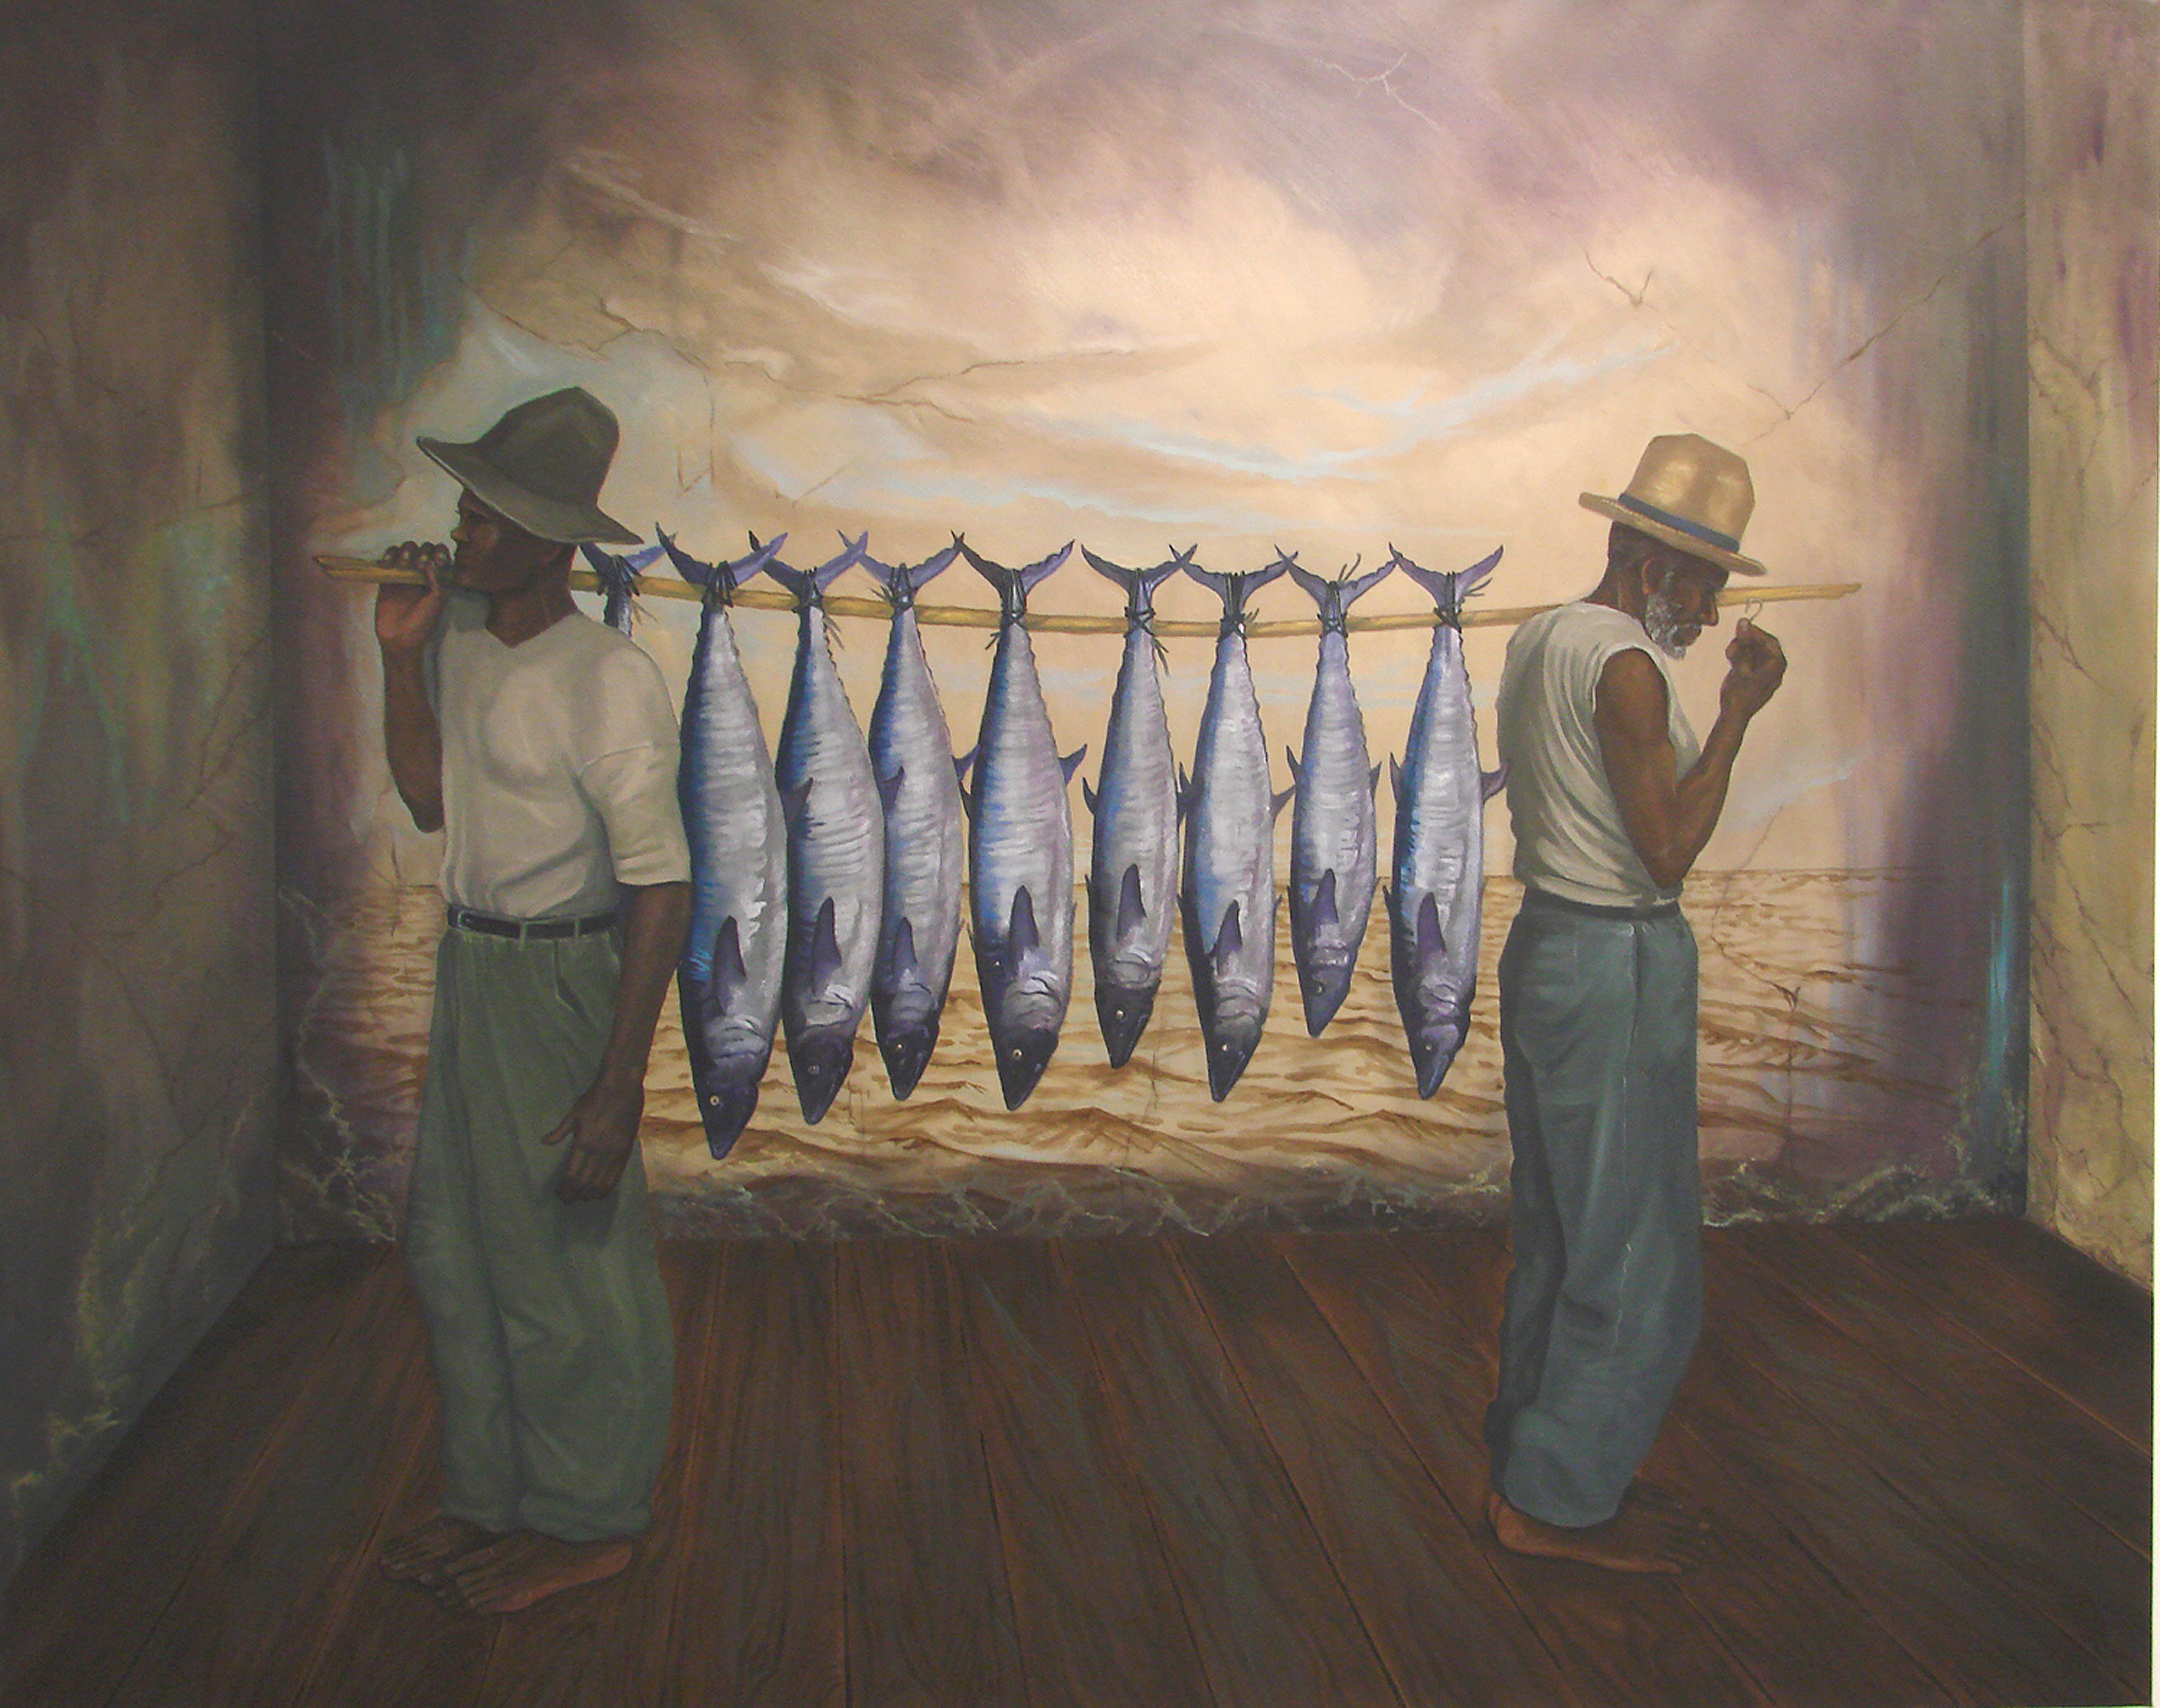 Painting of two men carrying 8 fish on a long, slender piece of wood